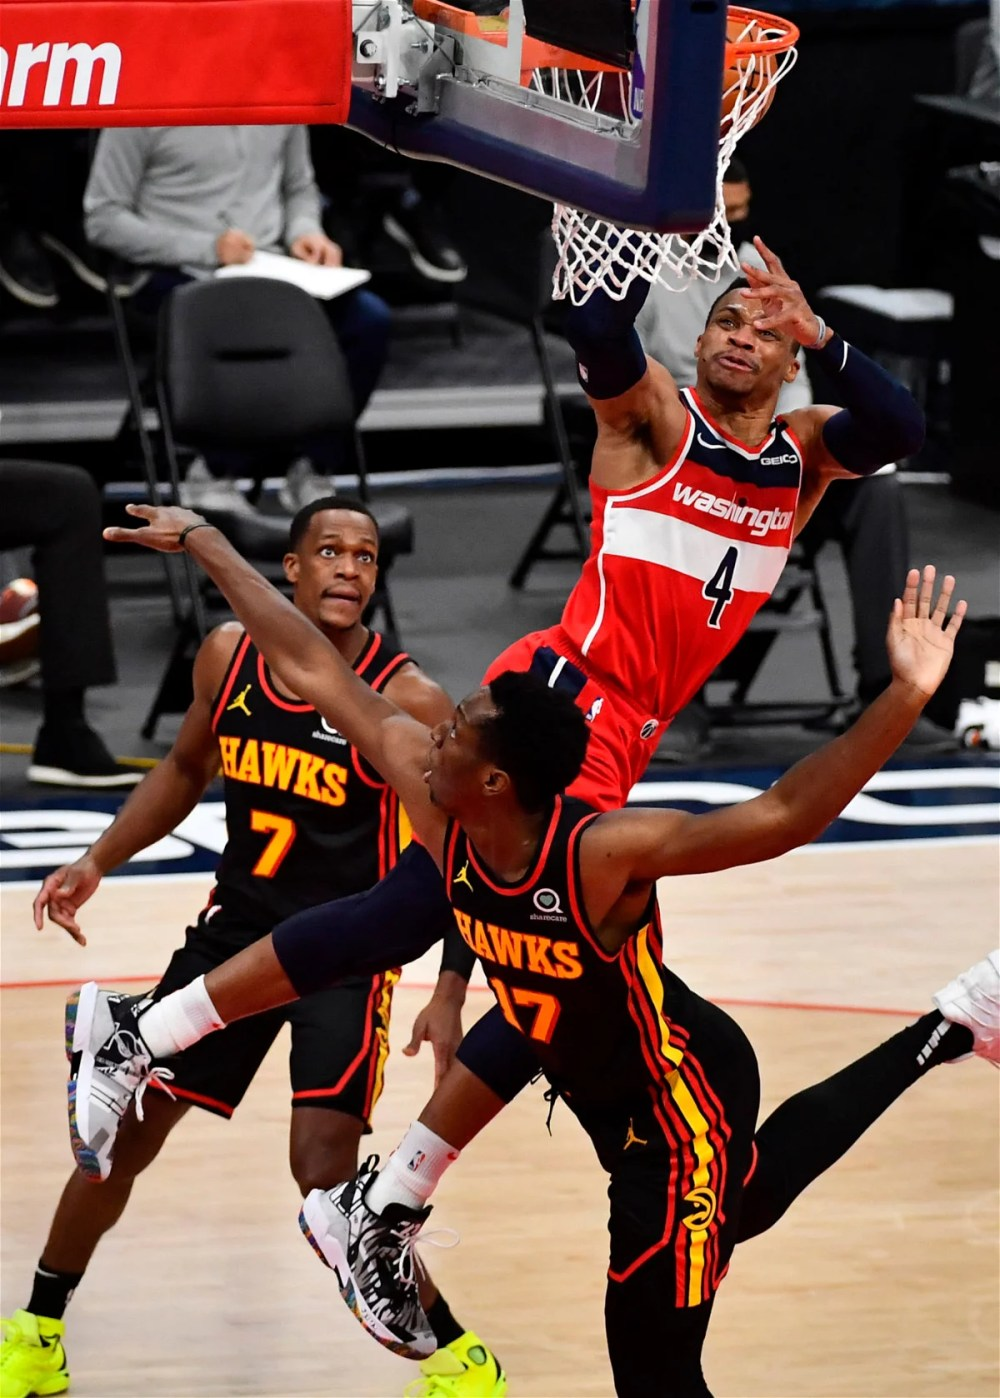 Not My Character': Wizards' Russell Westbrook Disagrees With Ejection After  Tussle with Rajon Rondo - EssentiallySports